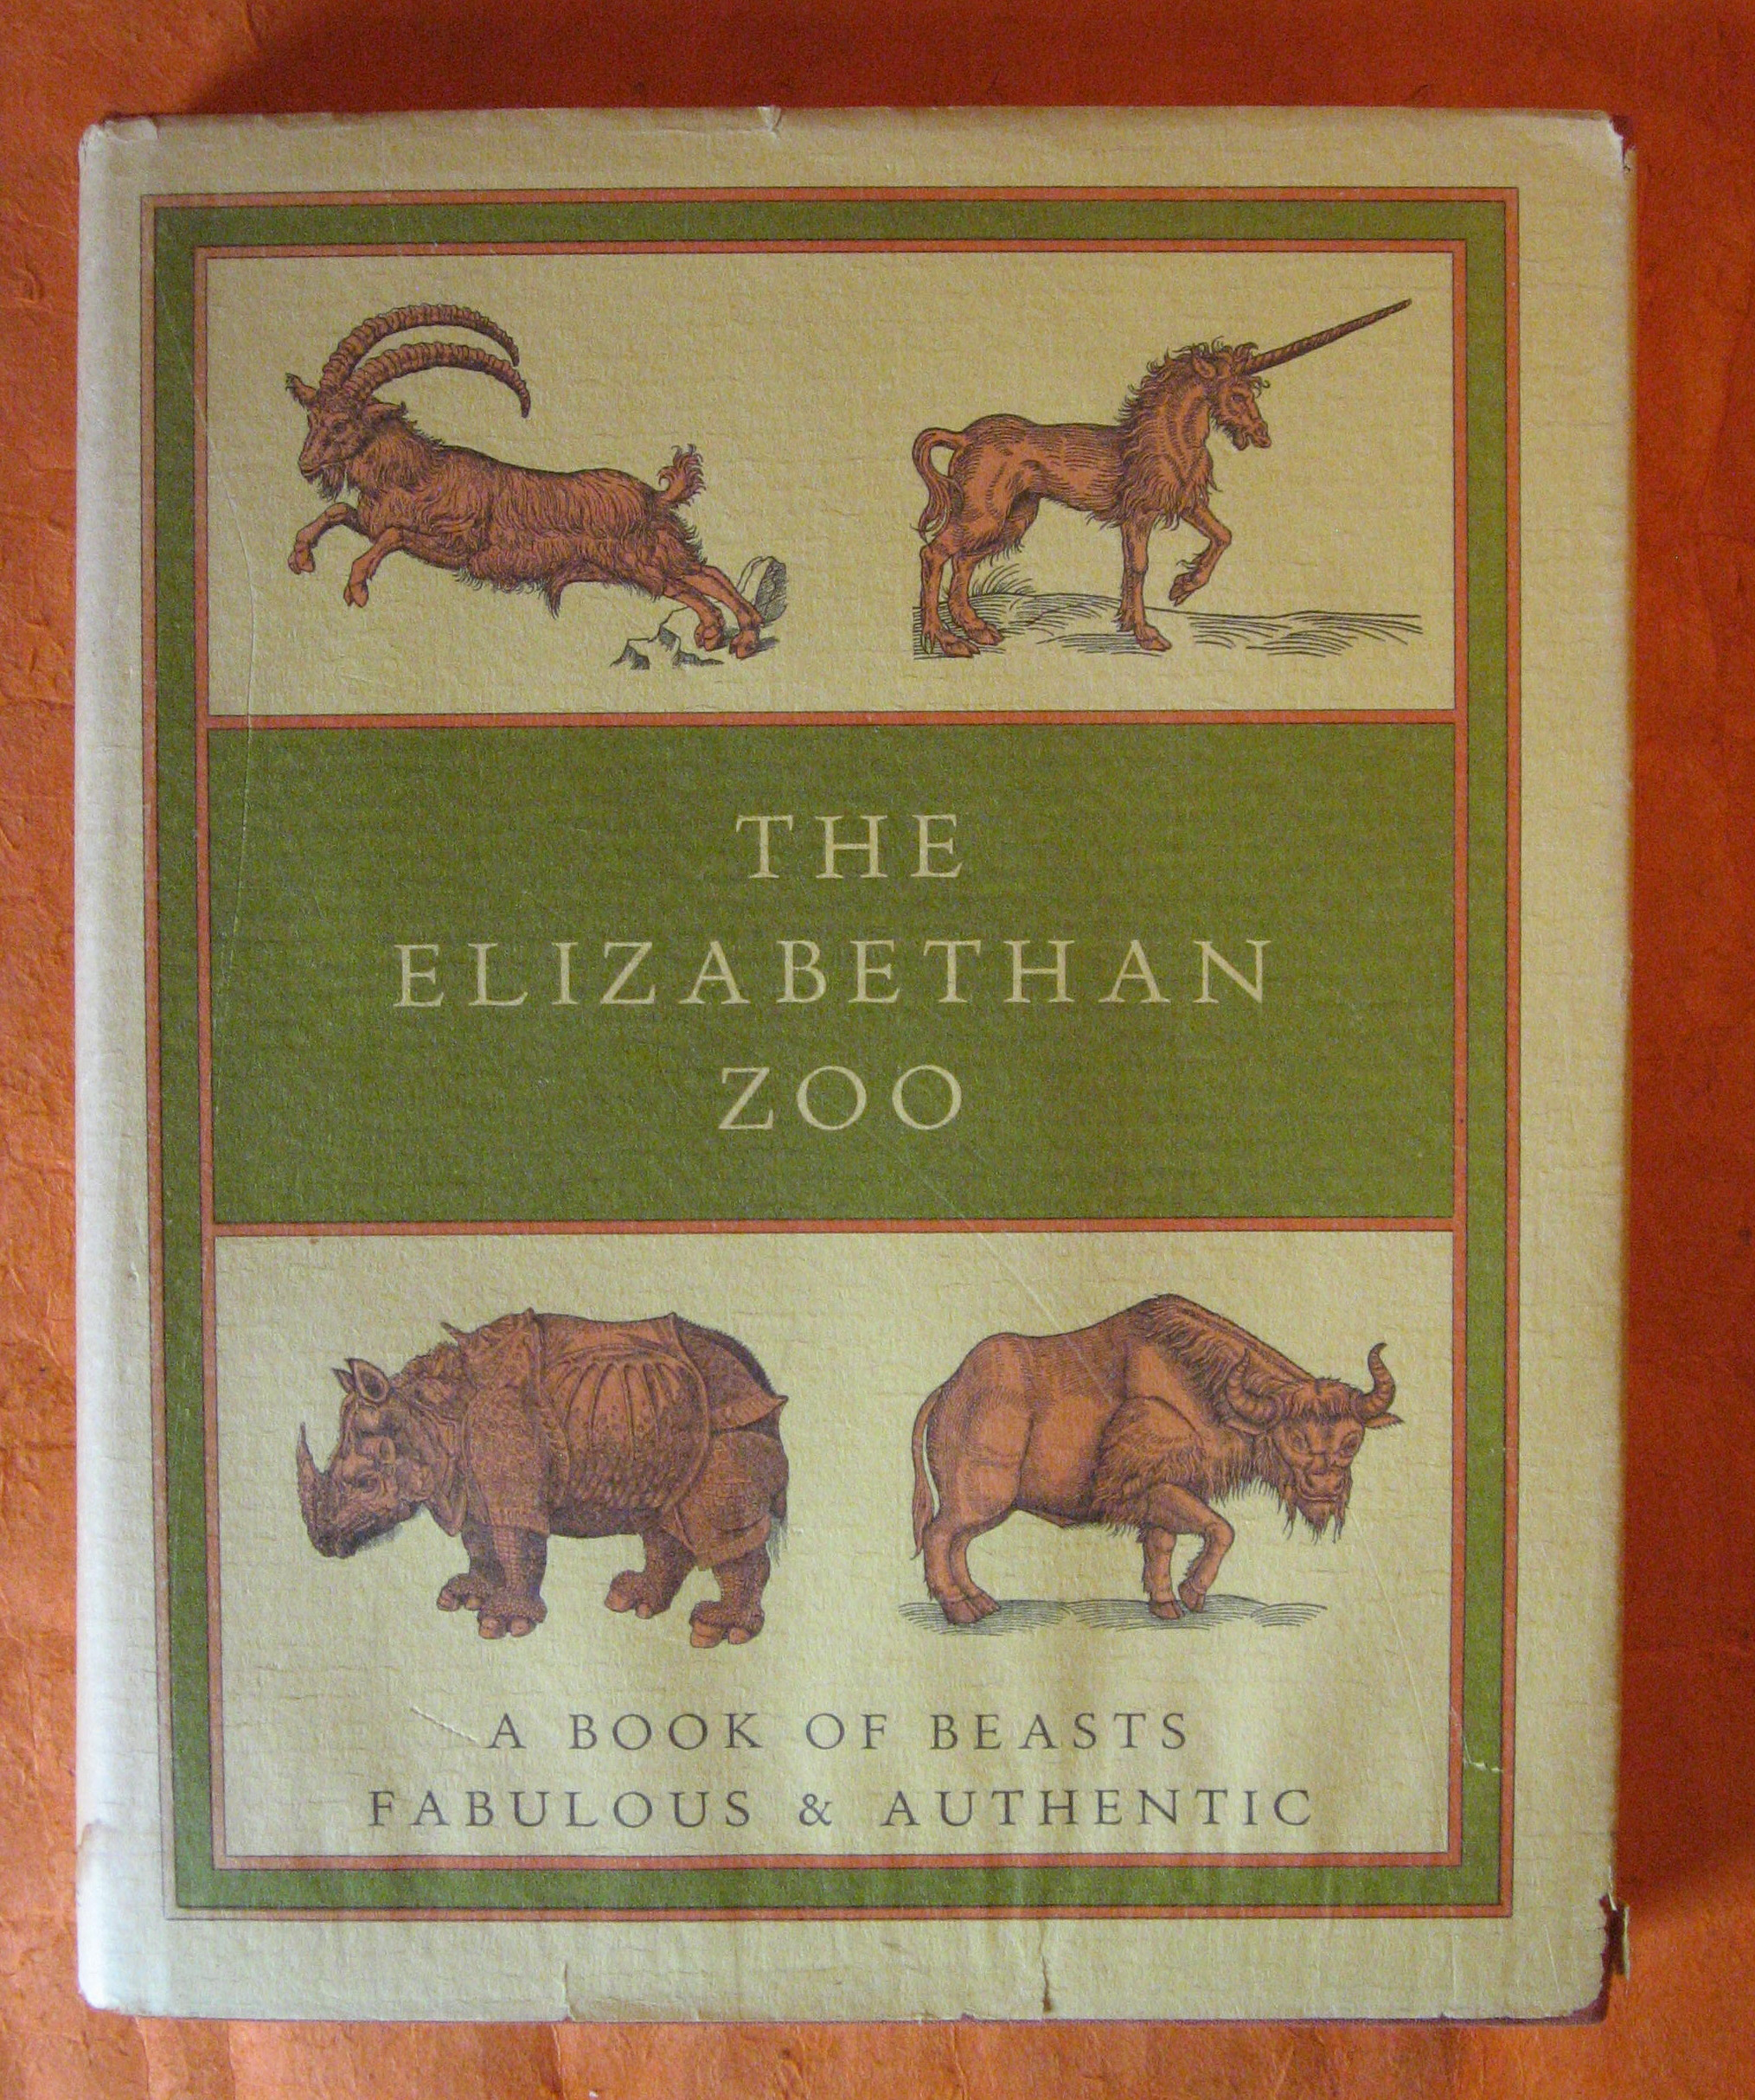 Image for The Elizabethan zoo: A book of beasts both fabulous and authentic (Nonpareil books)